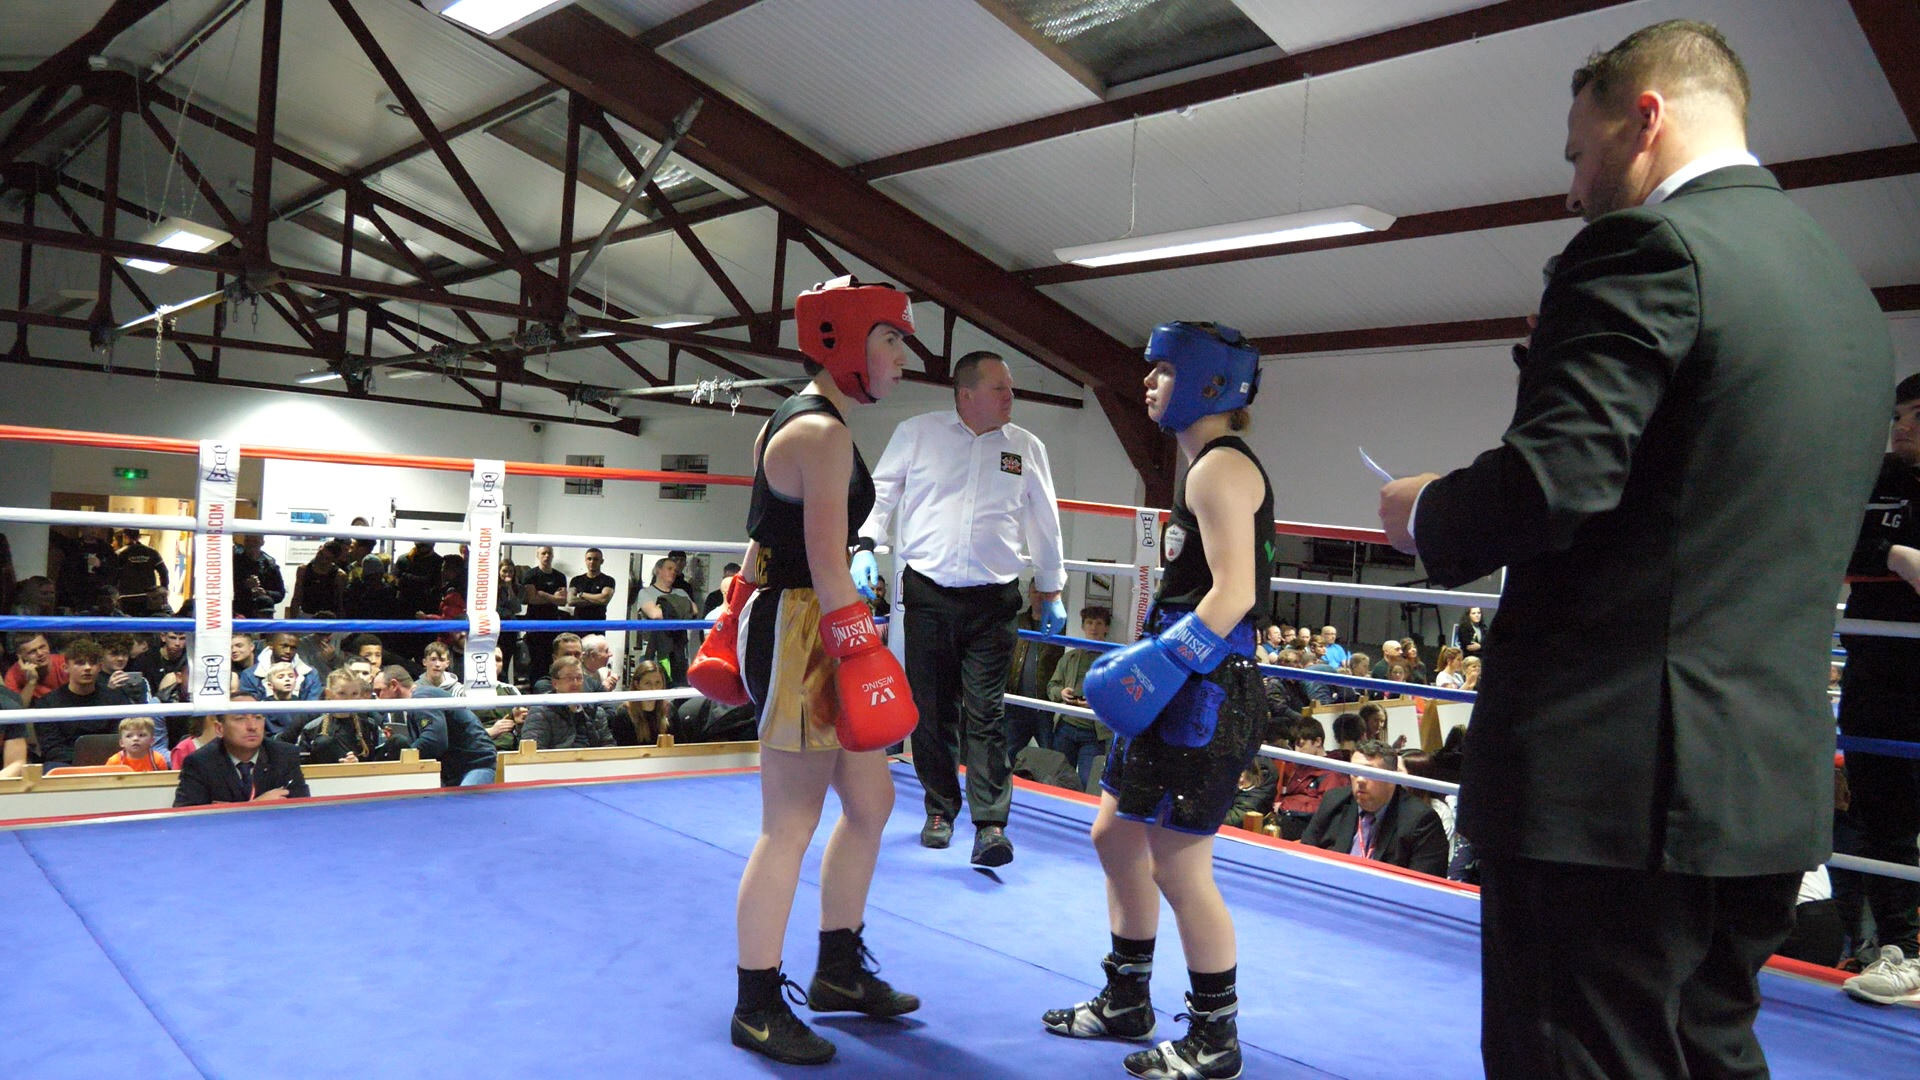 Our first video of GRM season 3 will feature Ellie Tennison of City of Hull Boxing Club v Neve Taylor Dilks of Freedom Boxing Club. Our undercard bout for this feature will be James Whatnell v Mathew Featherstone